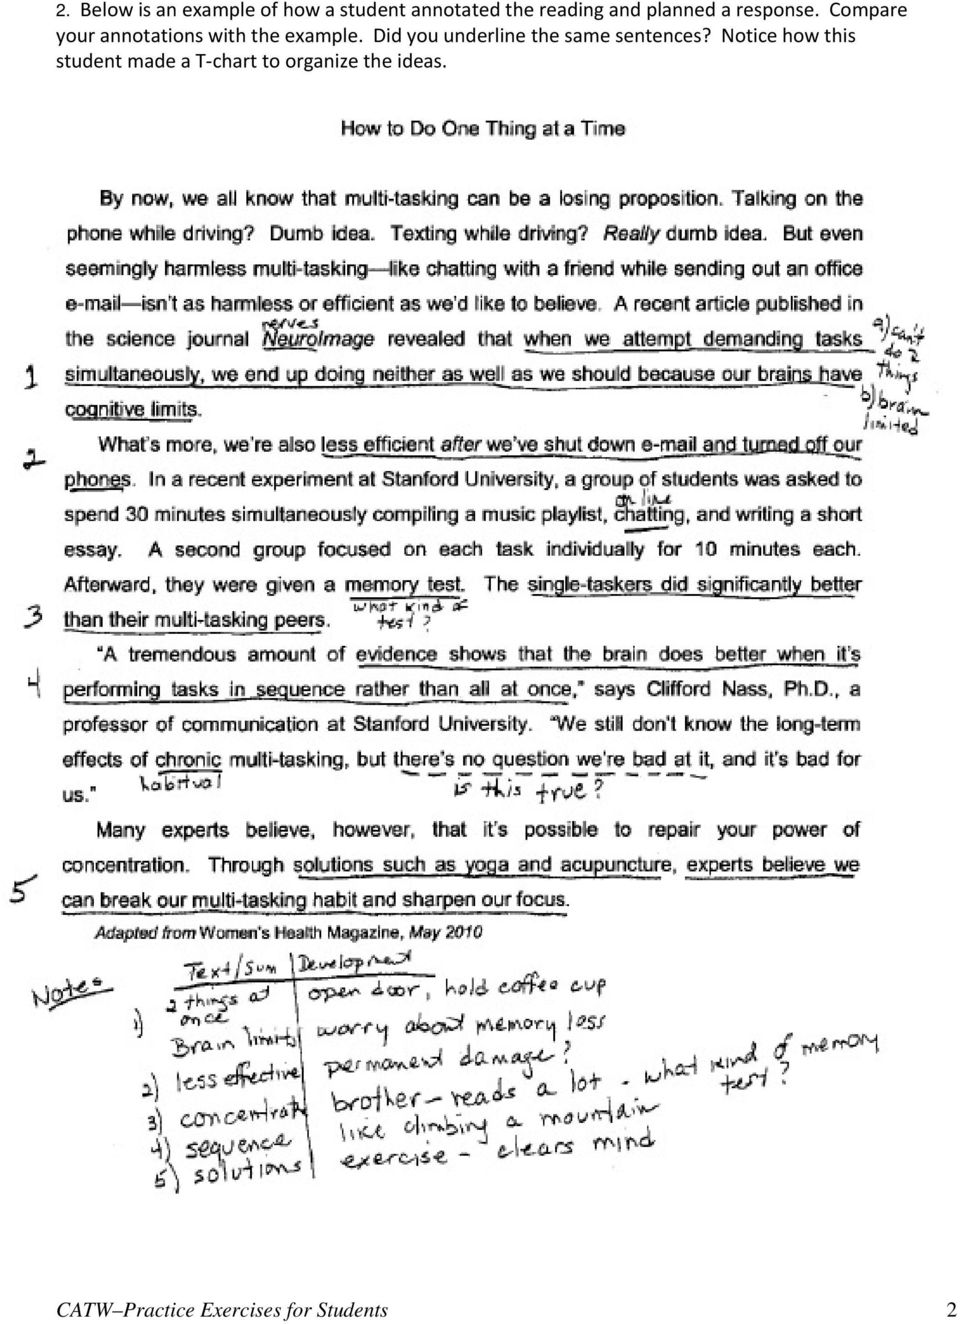 006 Research Paper Medical Page 3 Unbelievable Sample Papers Example Full